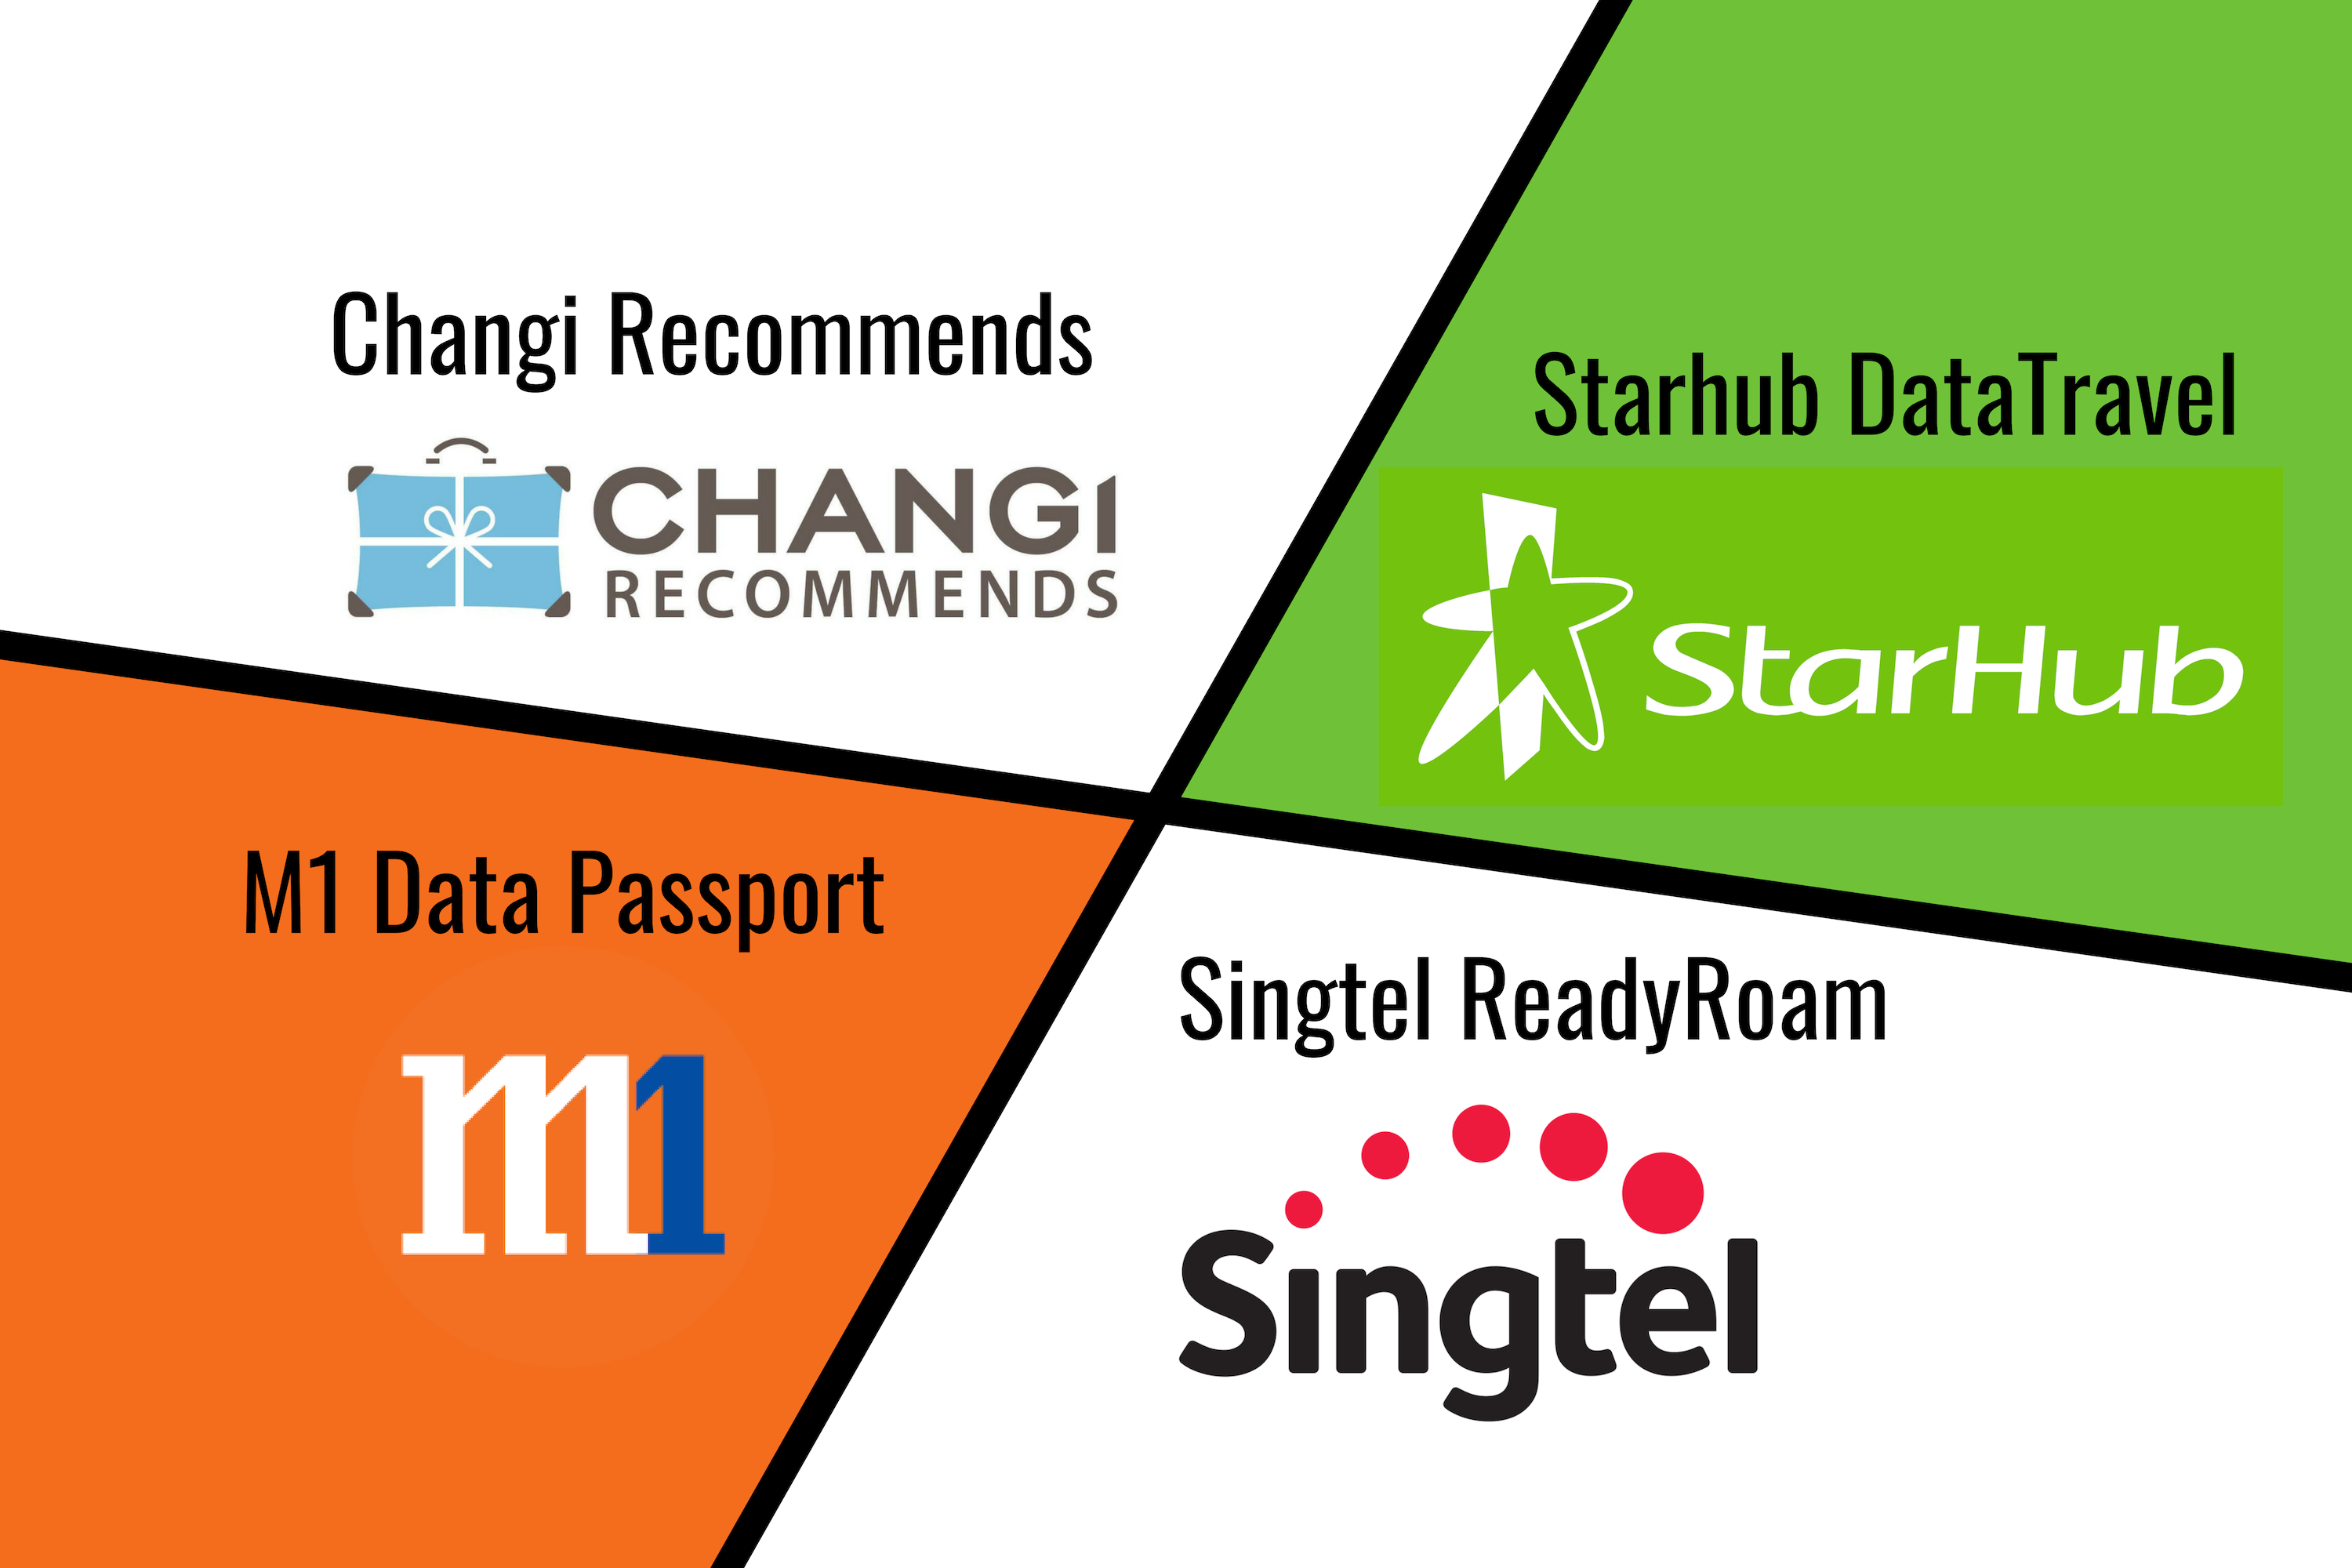 Cheapest Overseas Data For Singaporeans: Singtel ReadyRoam vs M1